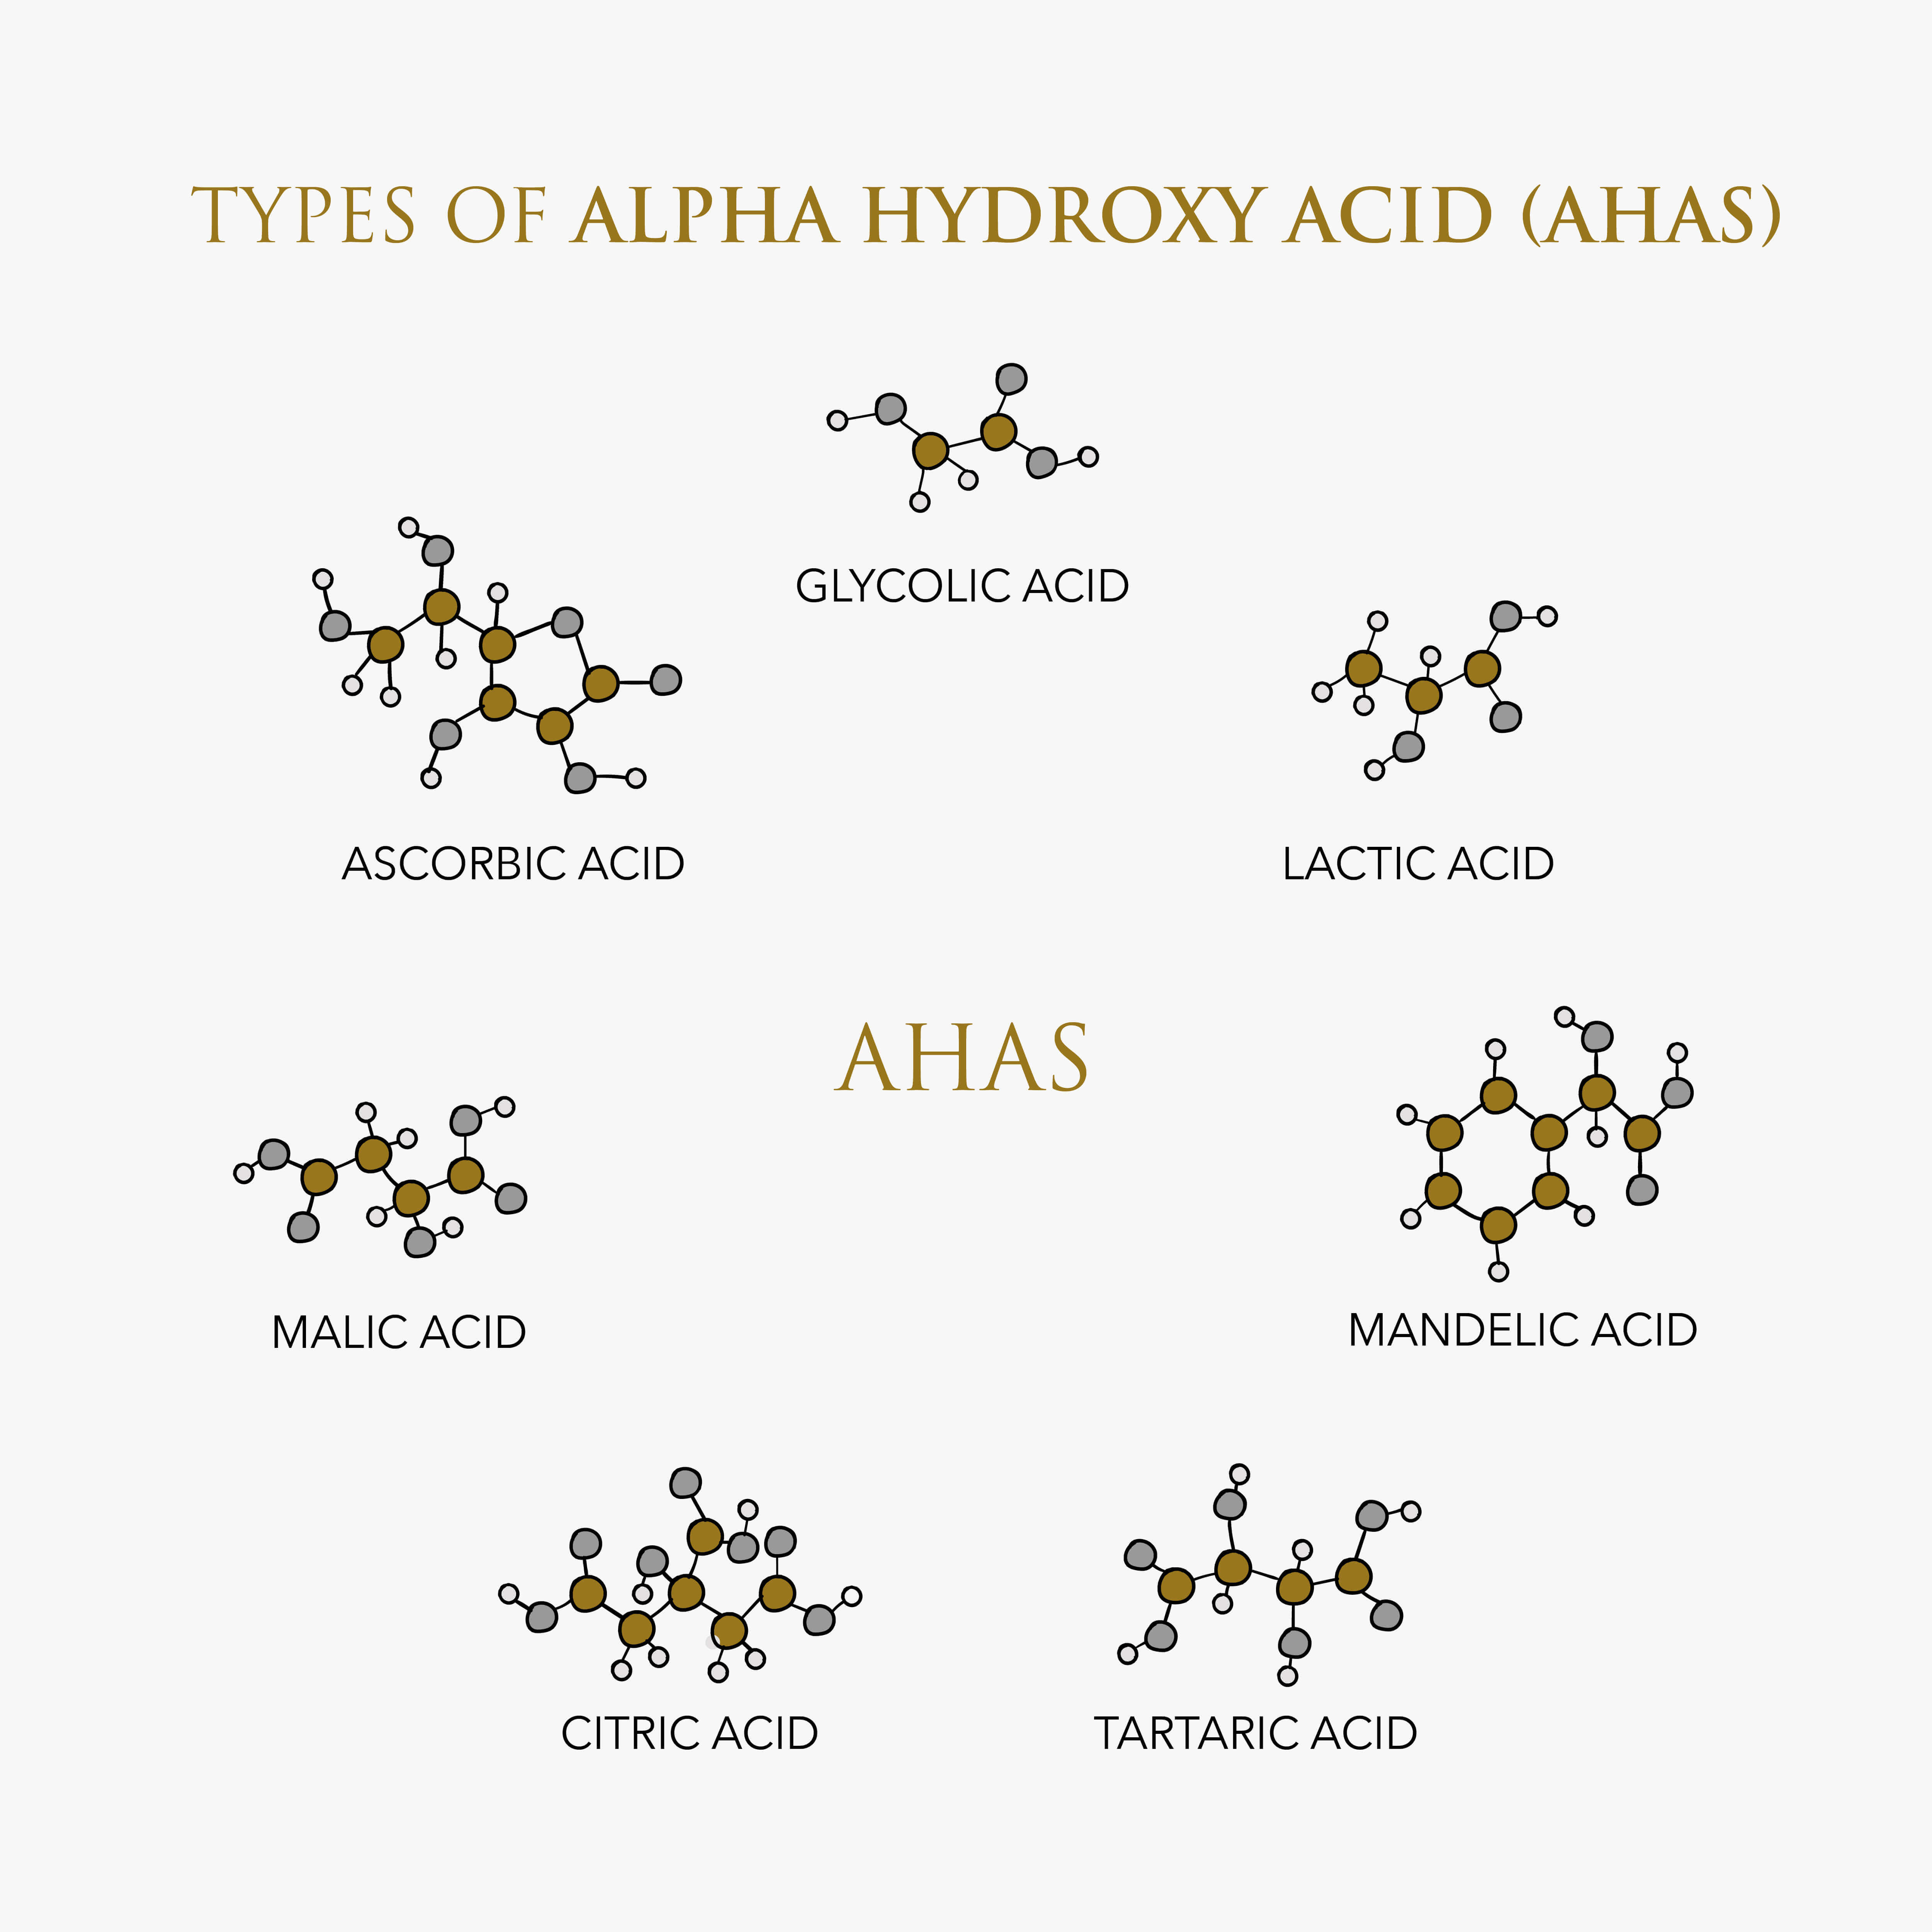 Infographic showing the different alpha hydroxy acids